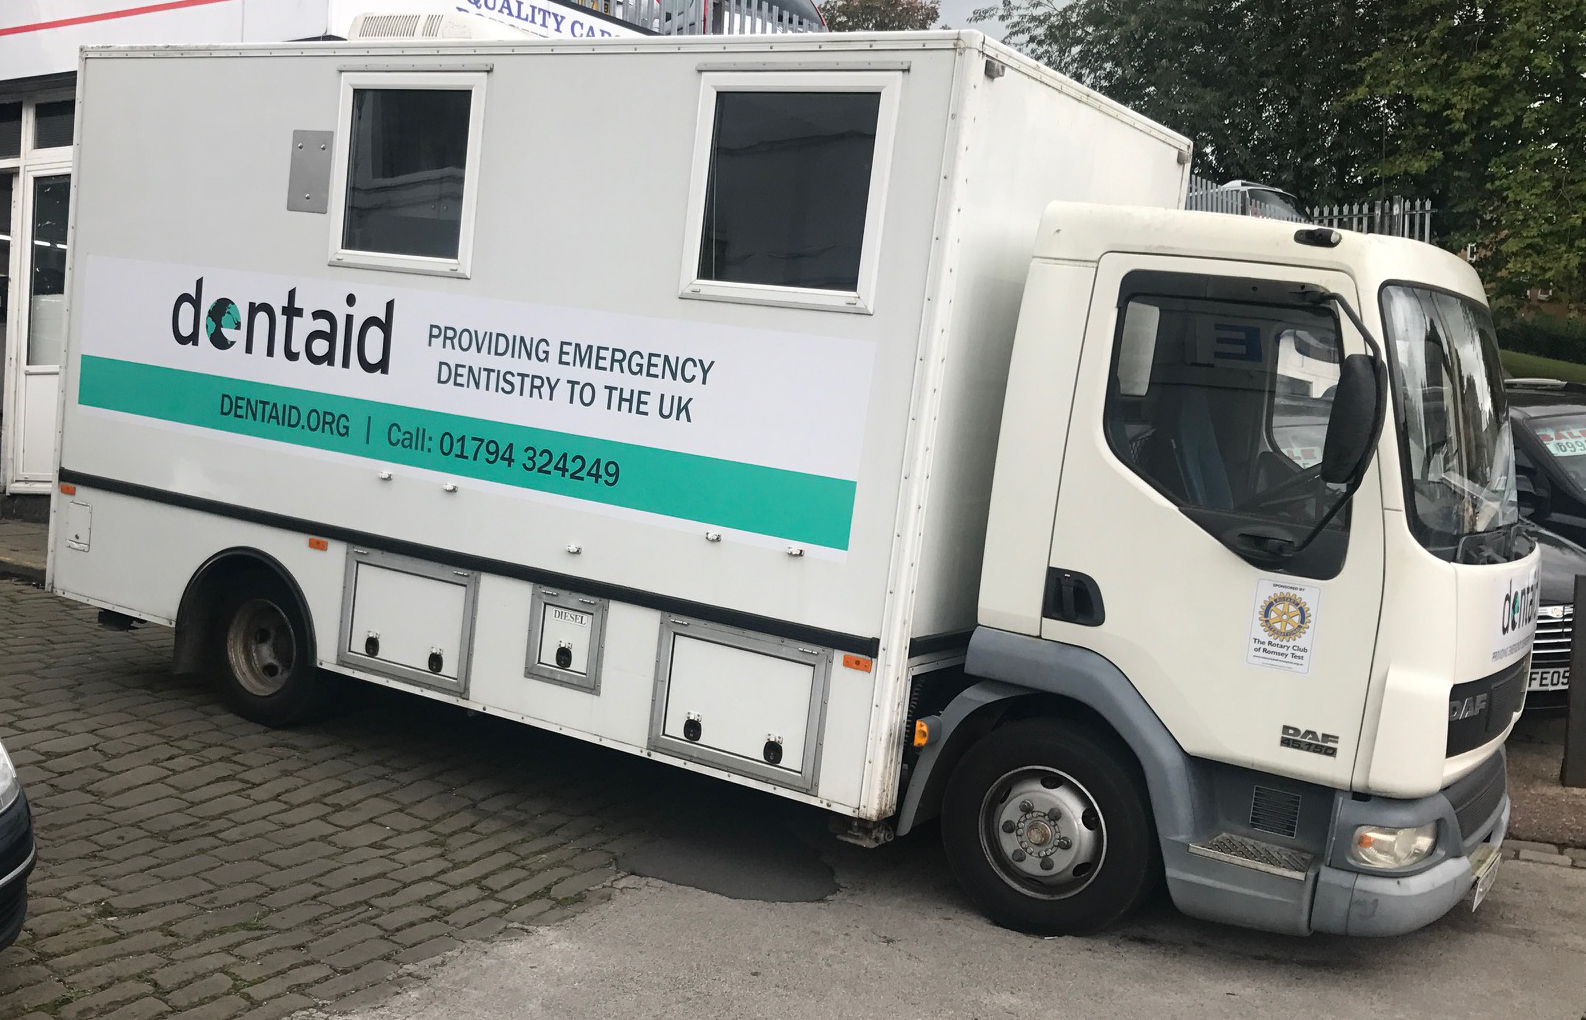 Dentaid in the UK - Dentaid